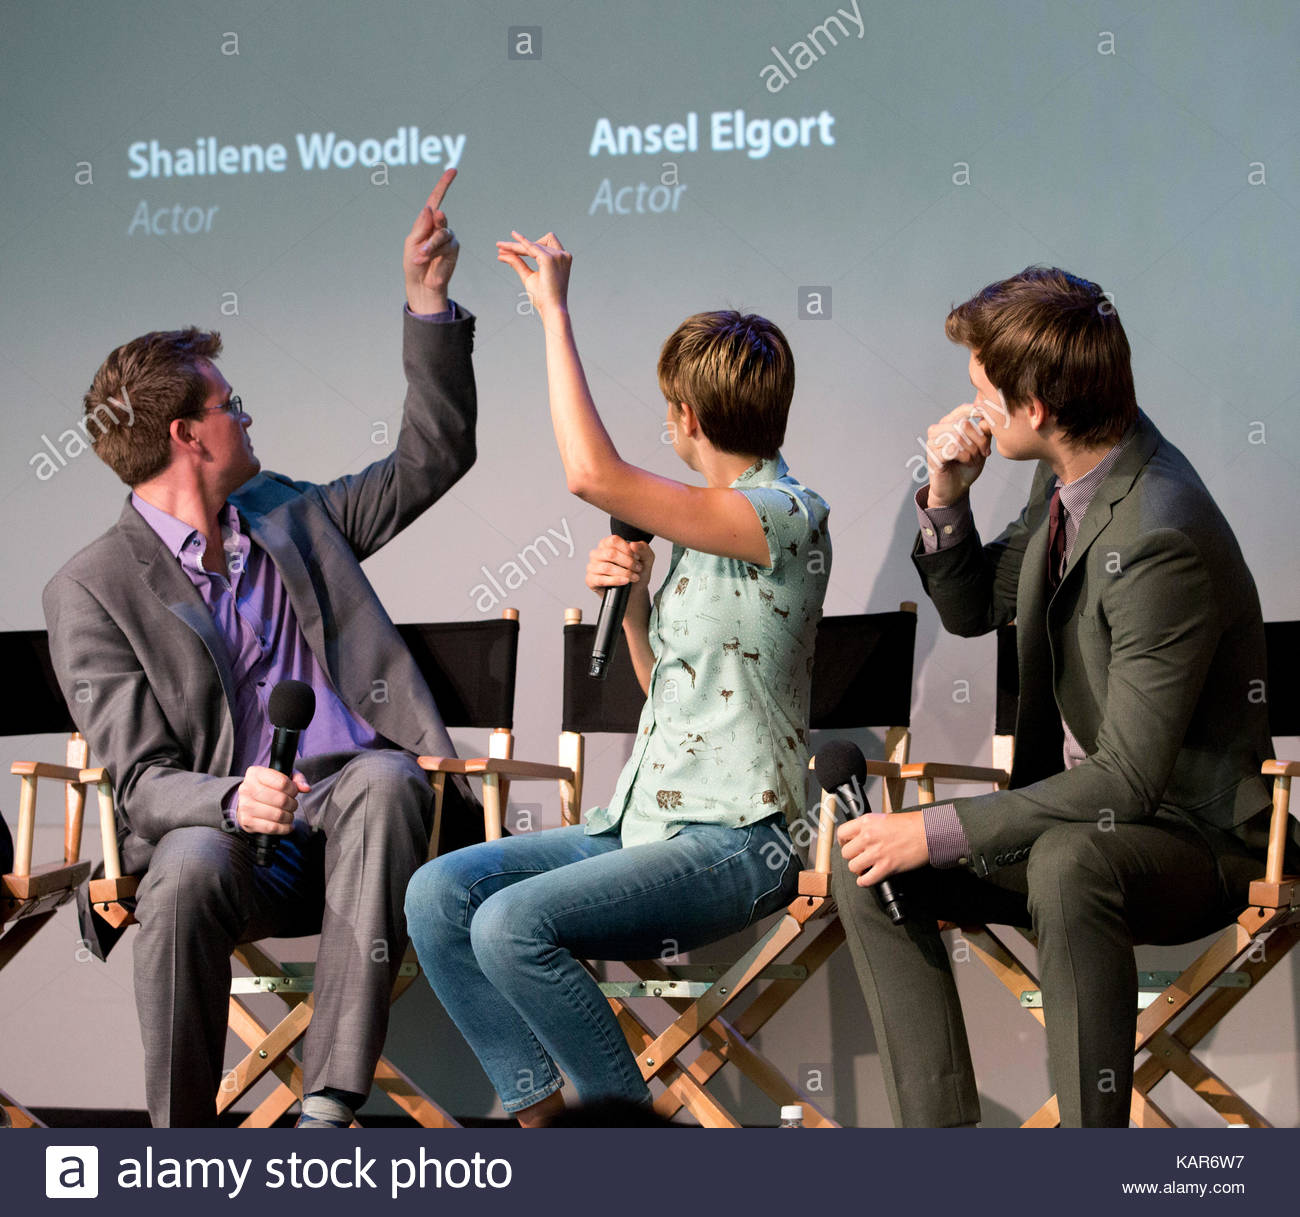 John green shailene woodley ansel elgortcast of the fault in our john green shailene woodley ansel elgortcast of the fault in our stars at apple store meet the filmmaker event in ny the cast was very lively and spoke m4hsunfo